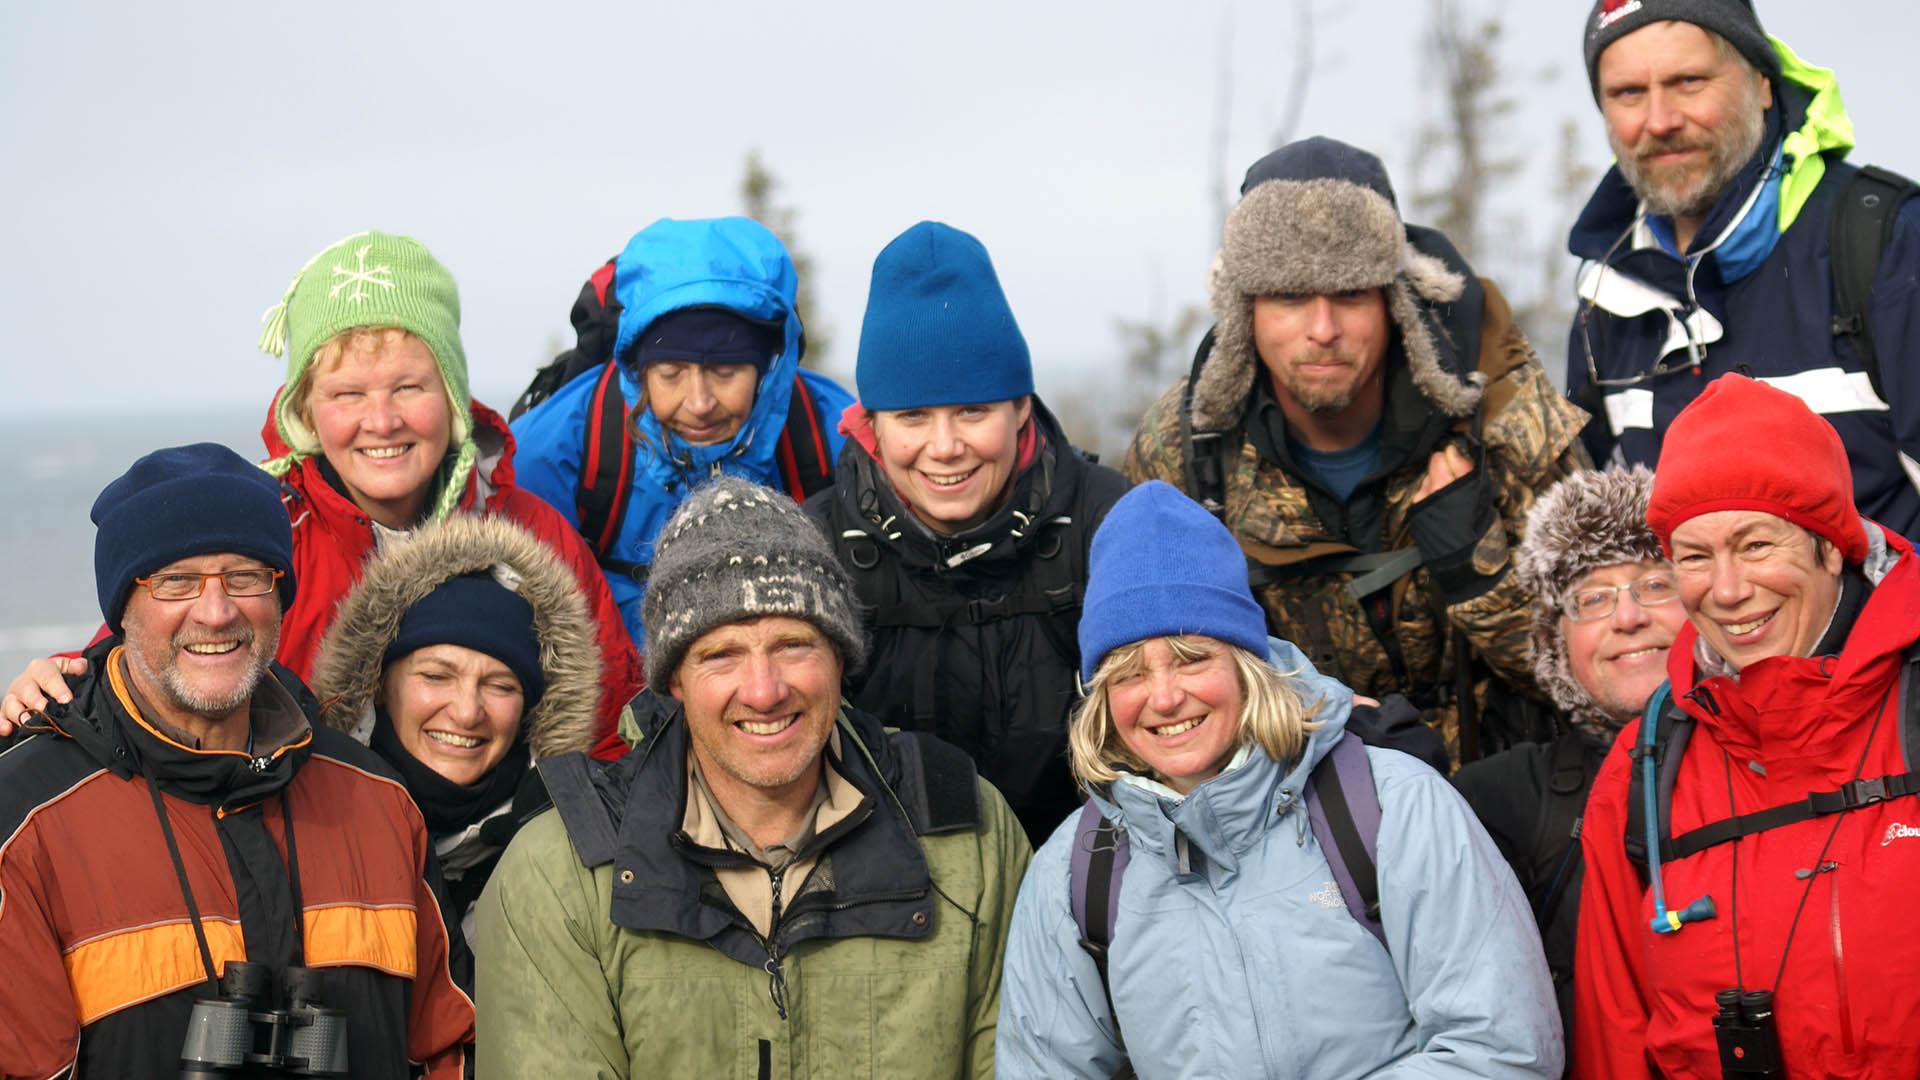 We toque the road to happiness - Nature Trek Canada